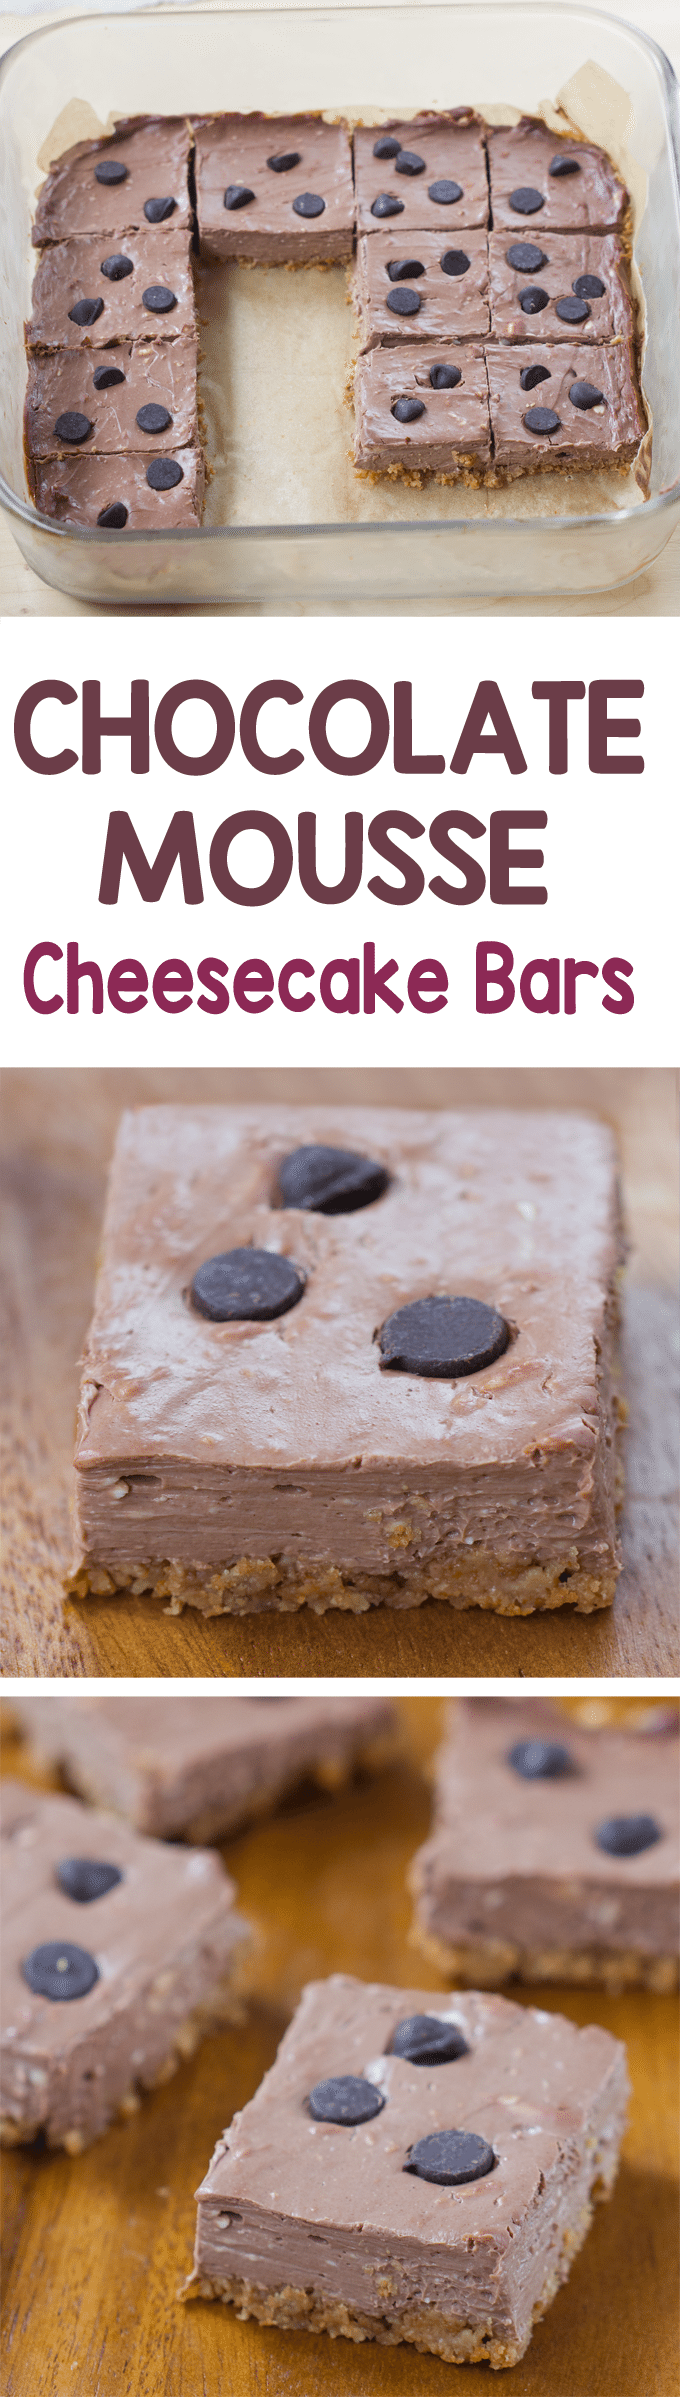 Chocolate Cheesecake Bars - Ingredients: 1/4 cup cocoa powder, 2/3 cup yogurt, 1/2 tsp vanilla, 1 tsp... Full recipe: http://chocolatecoveredkatie.com/2016/08/18/chocolate-mousse-cheesecake-bars/ @choccoveredkt